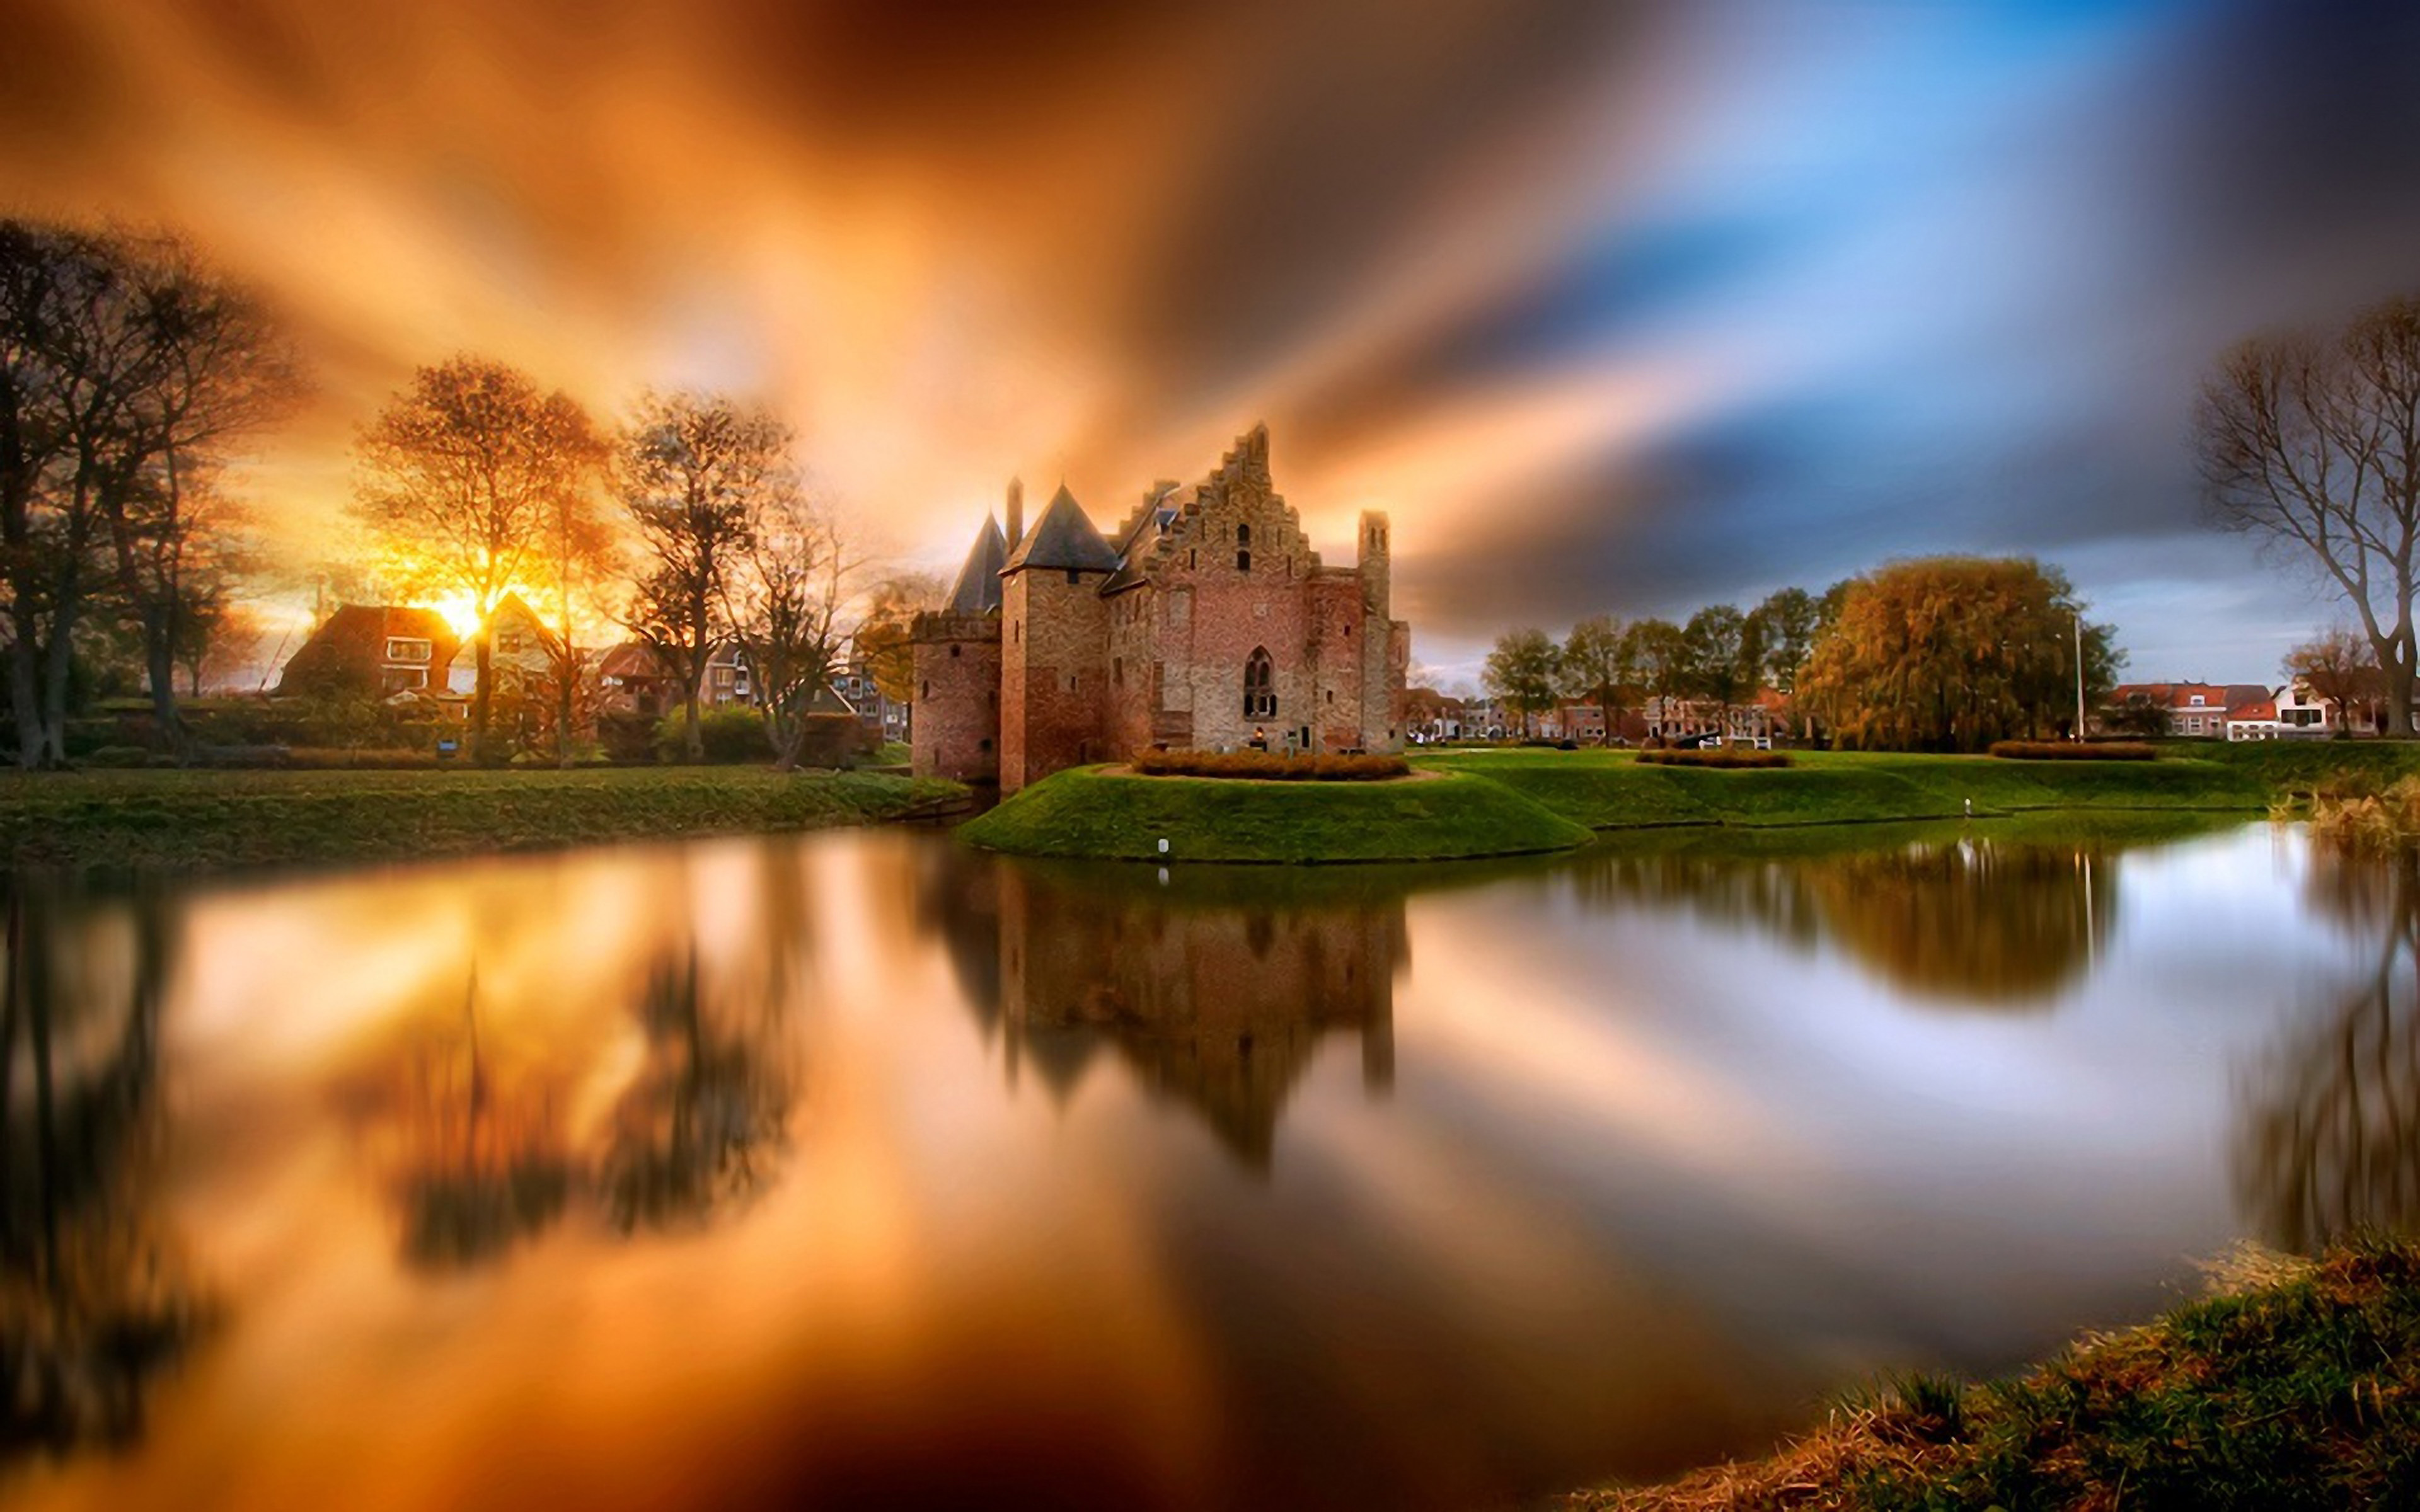 Raid a dragon's lair, search for lost artifacts, or just enjoy some fishing in the shade. Castle Lake Sunset Netherlands Hd Wallpaper : Wallpapers13.com